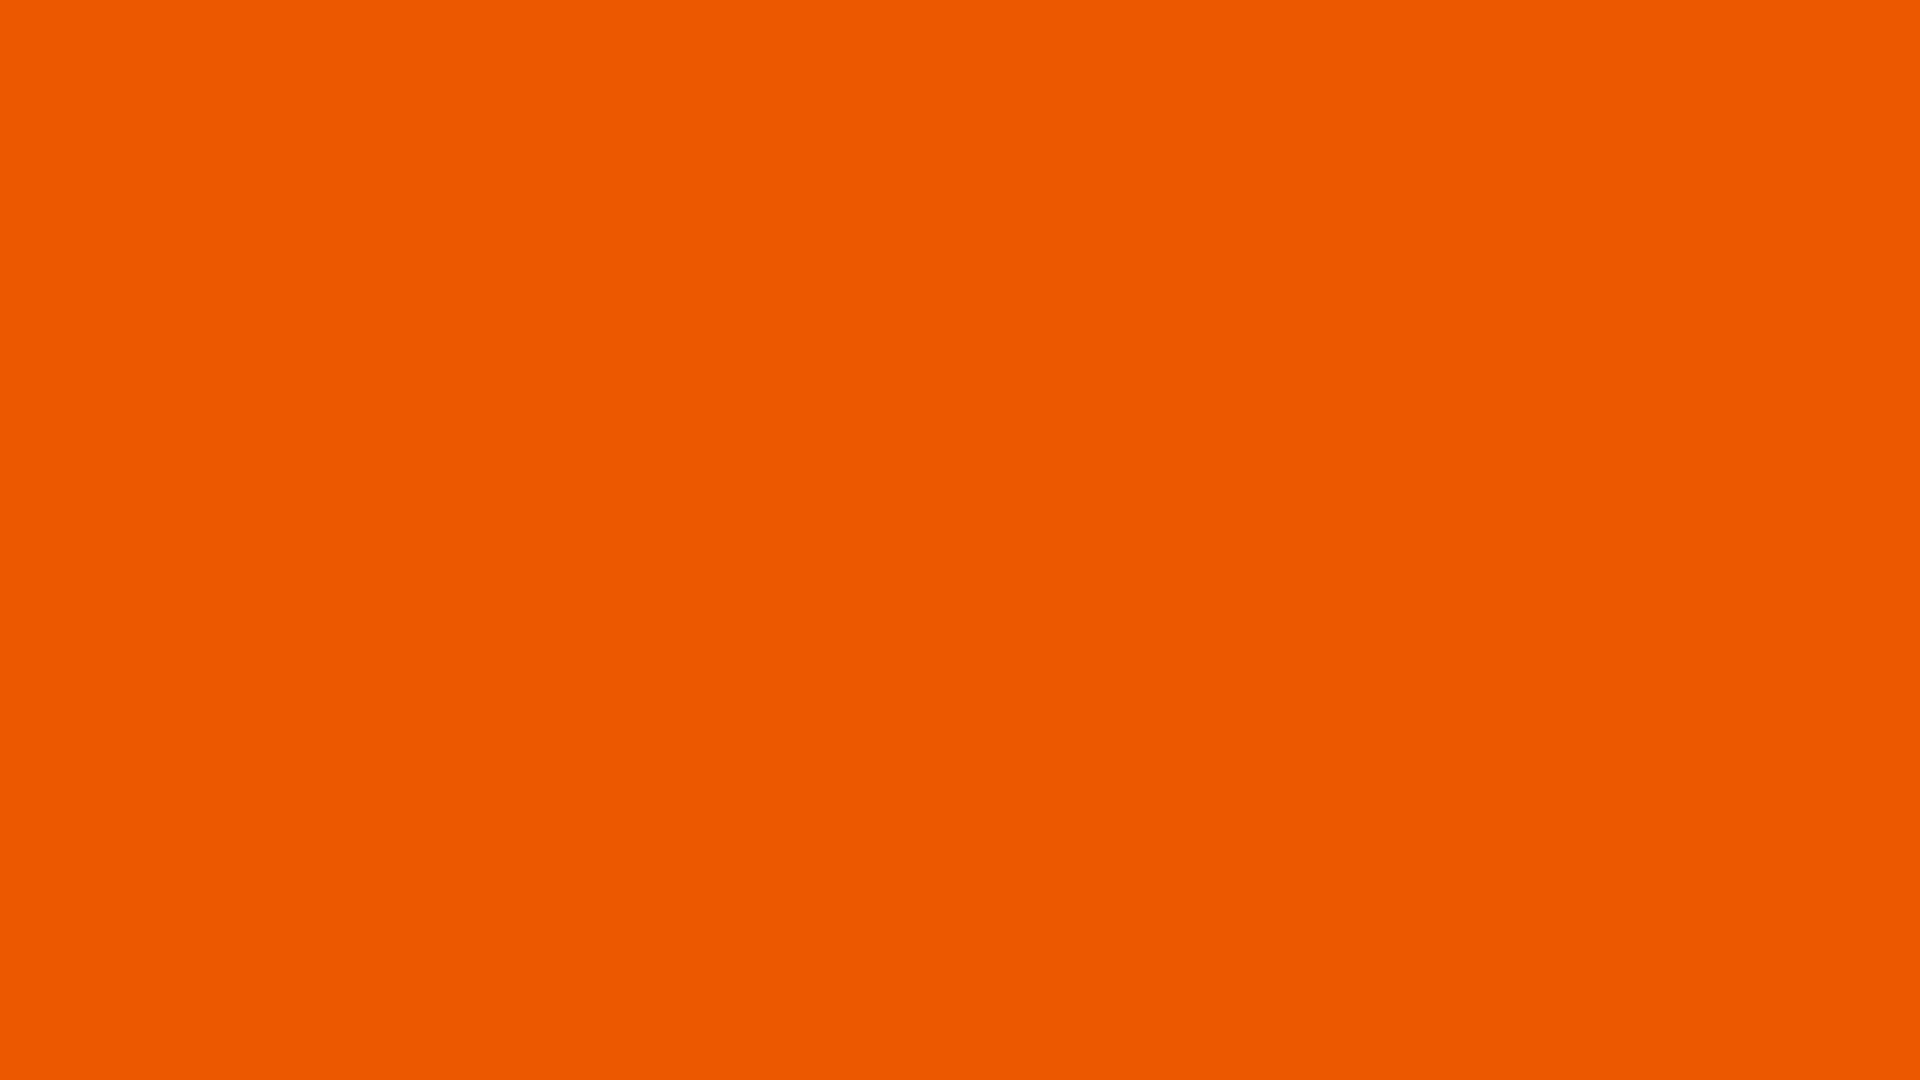 1920x1080 Persimmon Solid Color Background